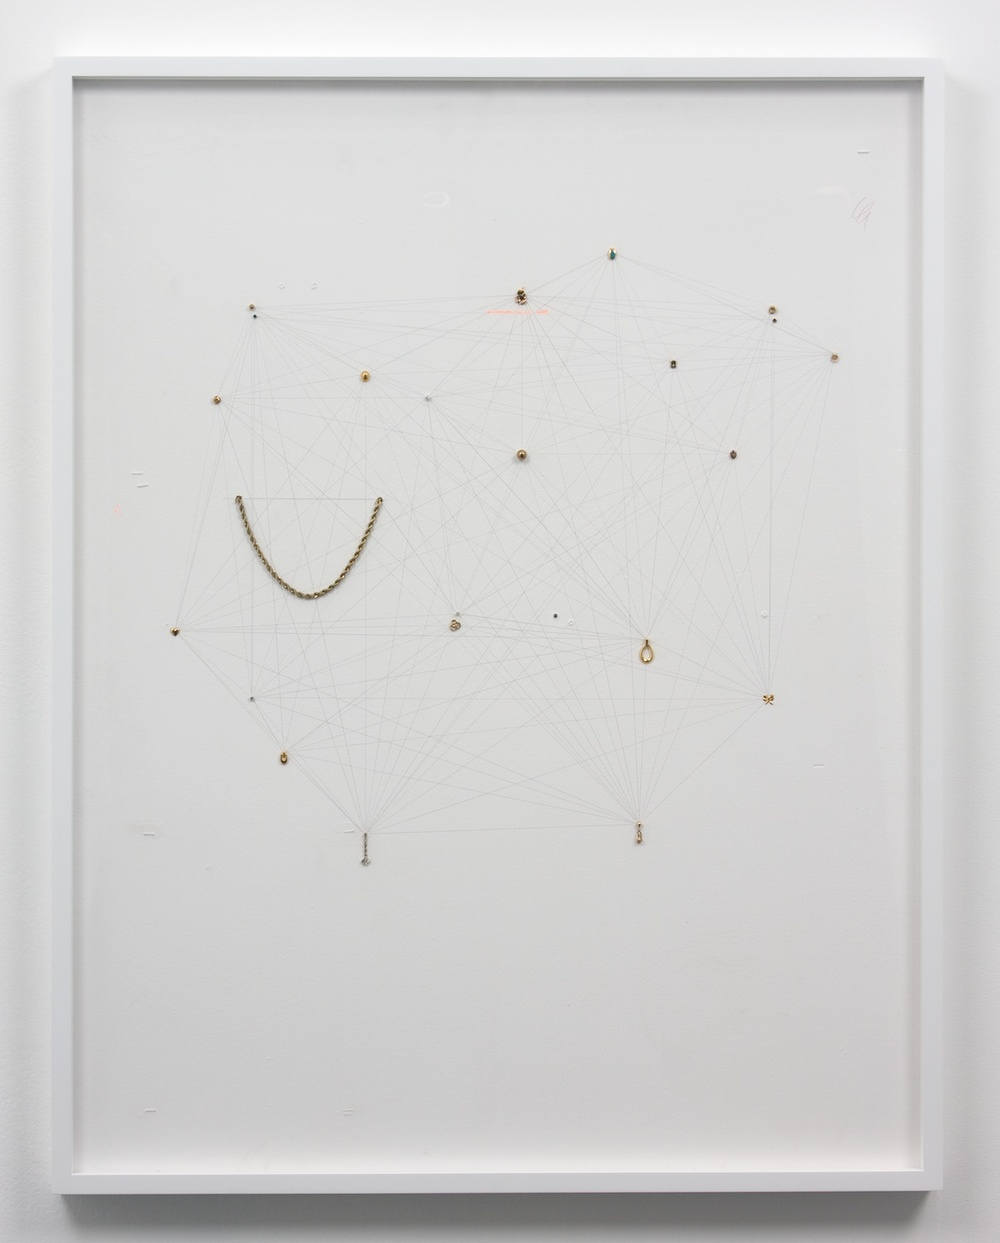 "Amanda Ross-Ho Untitled Still Life (Network Arcticulation with Ornamental Standins) 2010 Sheetrock, latex paint, staples, paper, acrylic paint, colored pencil, single earrings, and gold plated chain 42"" x 32"" ARH001"